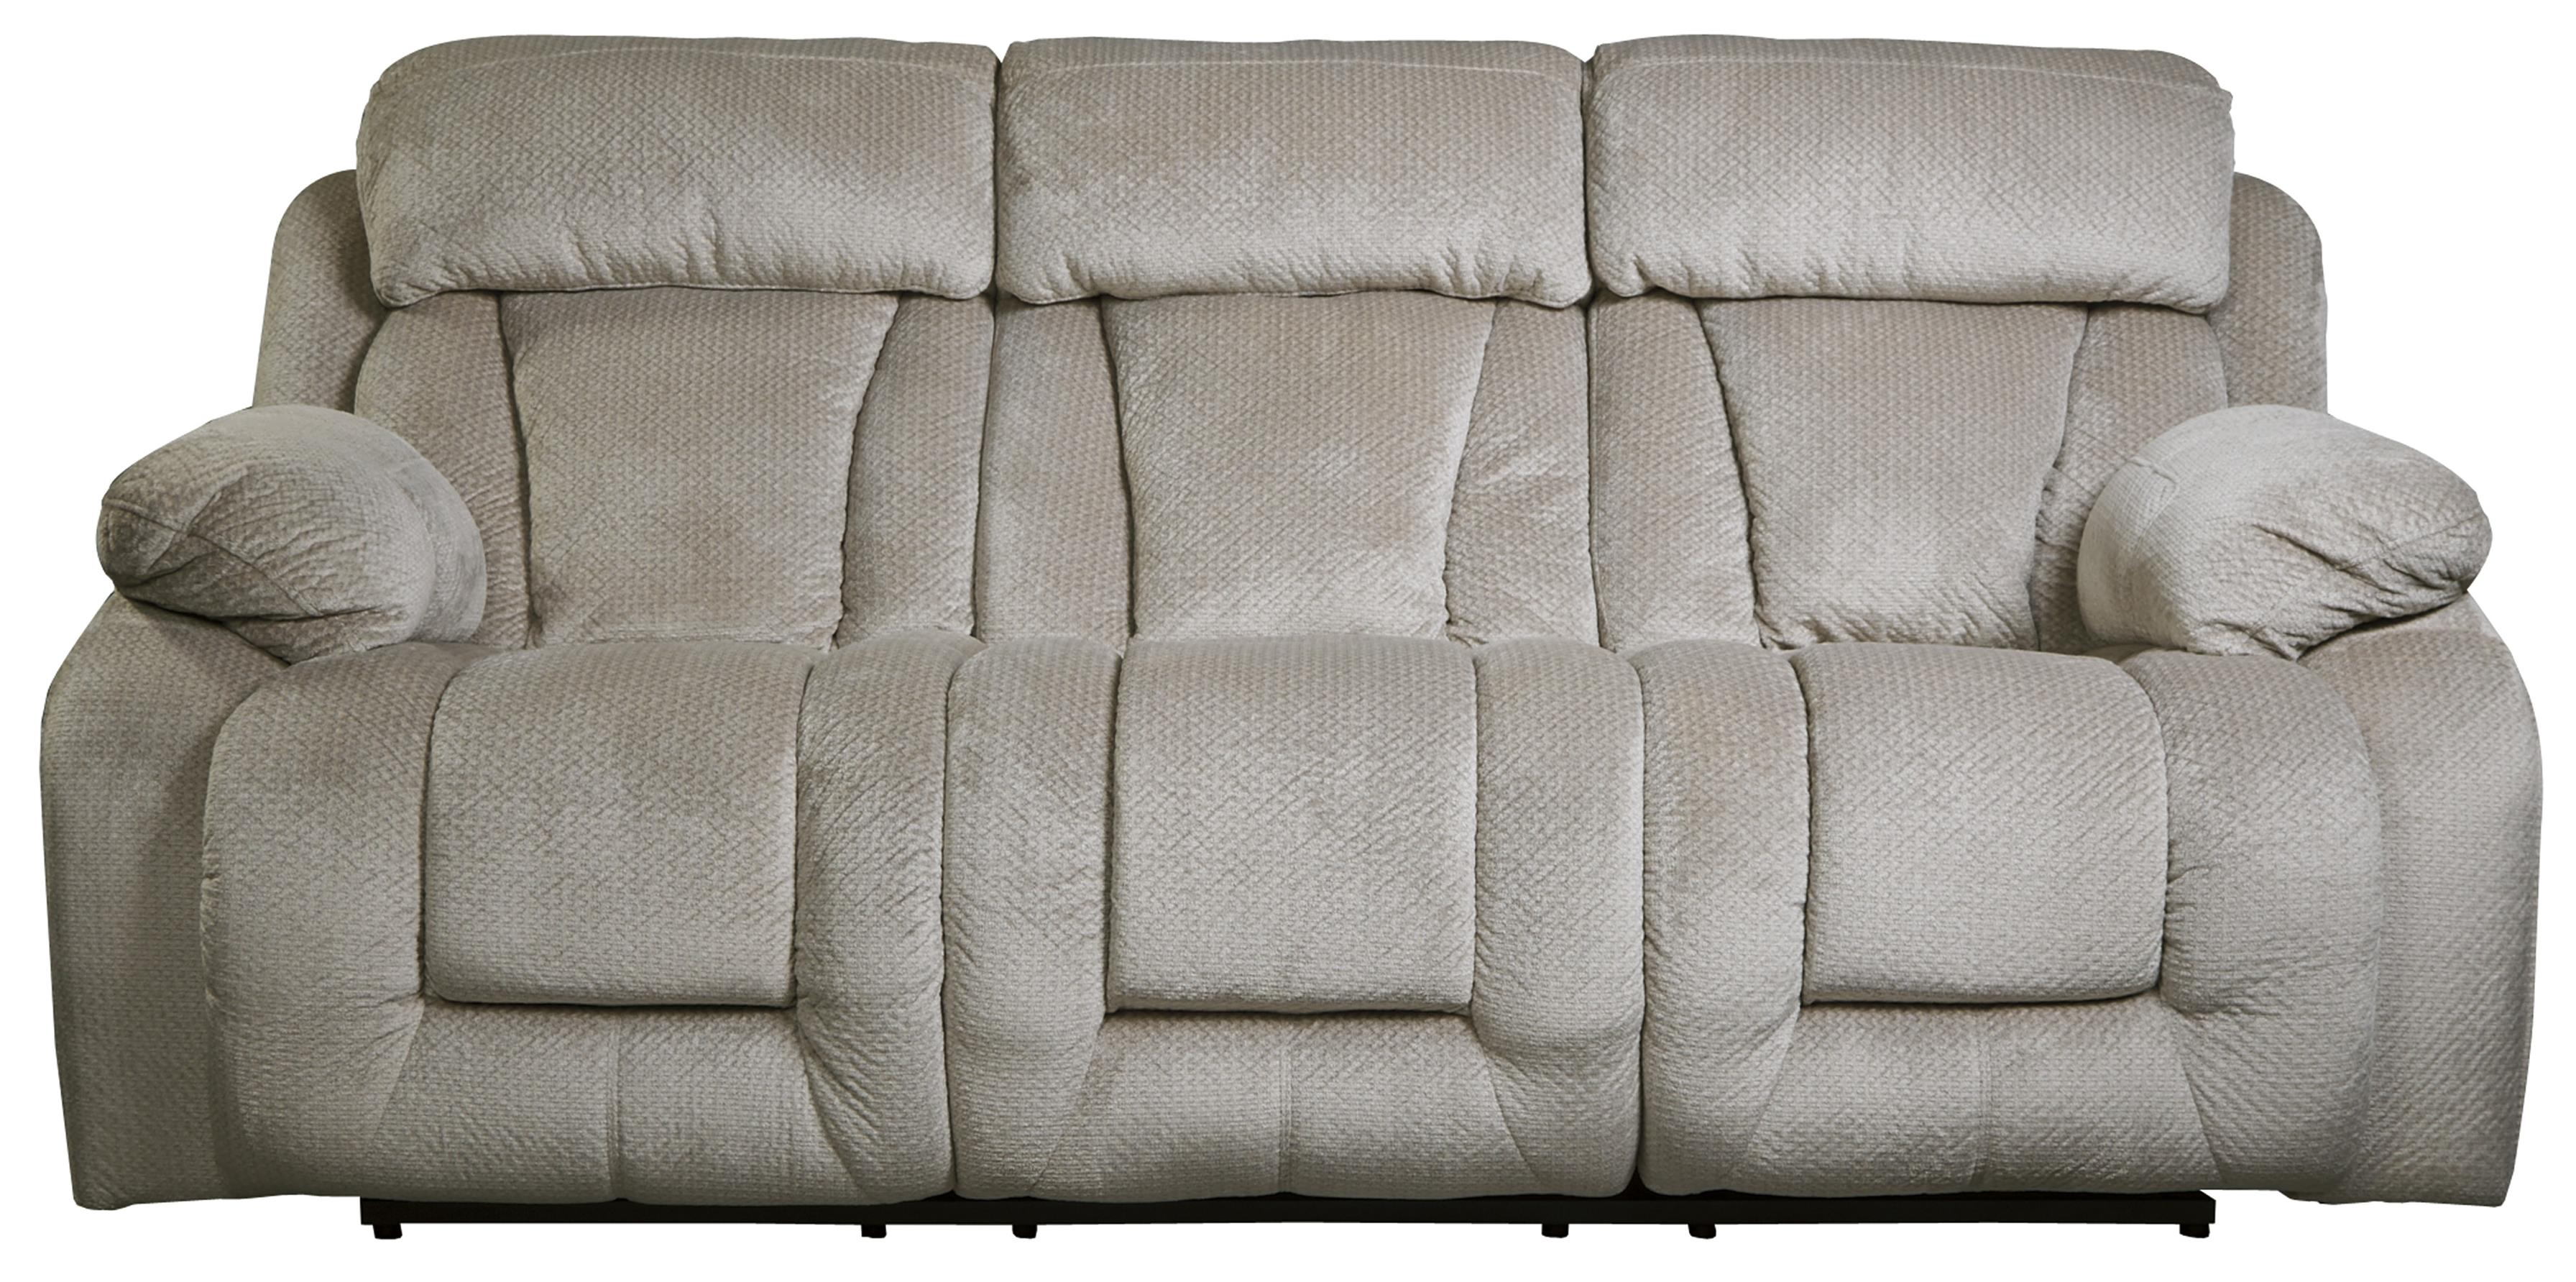 Signature Design by Ashley Stricklin Reclining Power Sofa - Item Number: 8650487